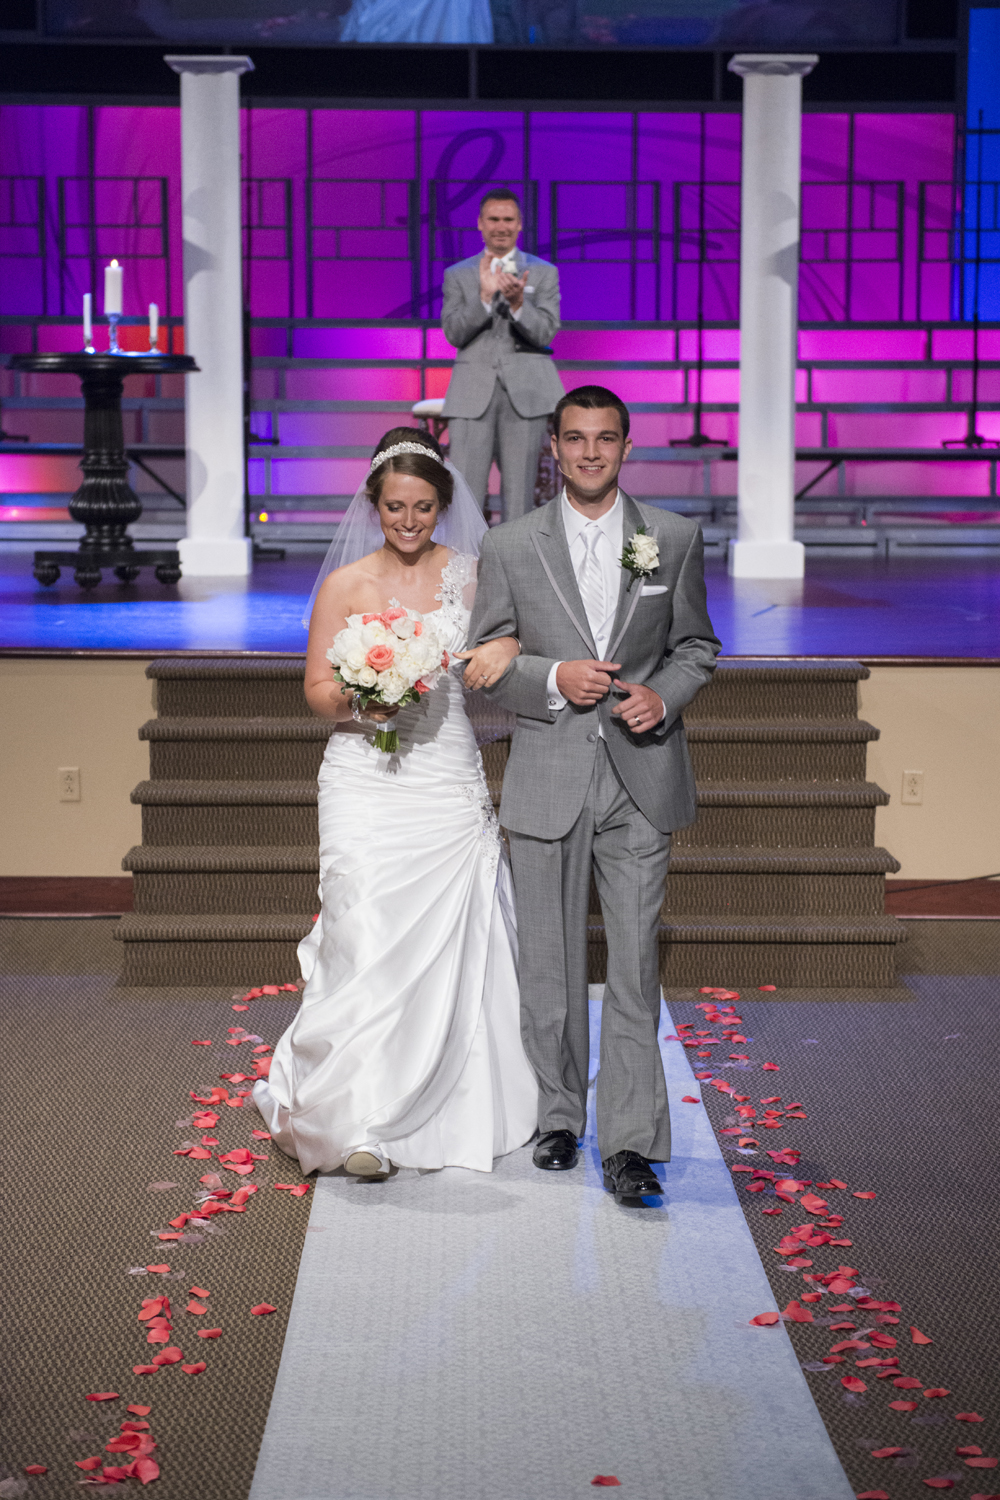 Bride and groom walking out of wedding during recessional in coral pink and navy